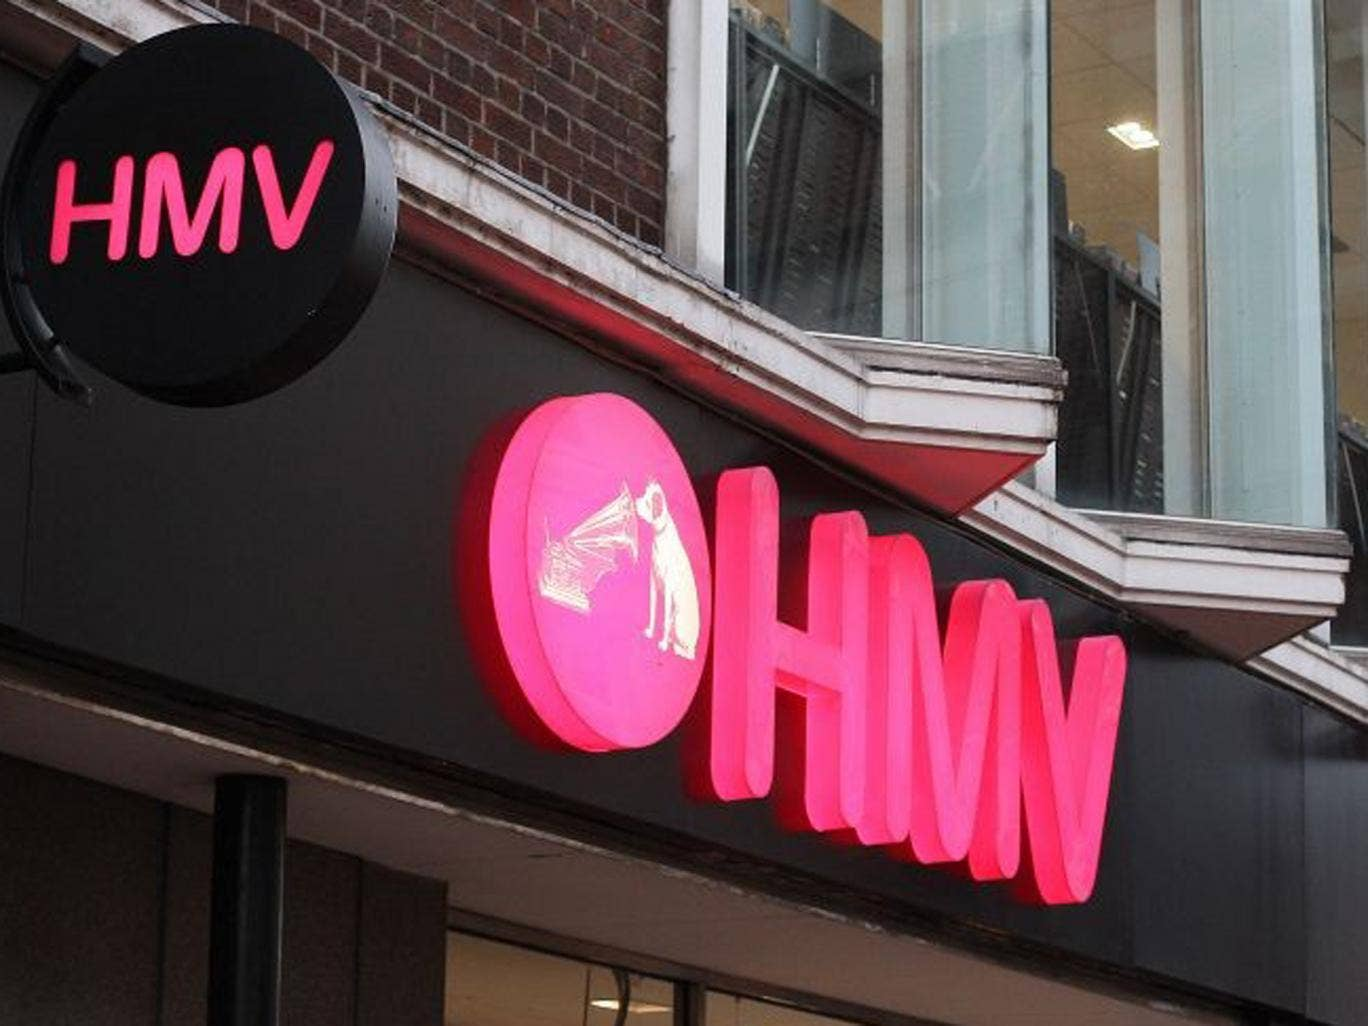 The move comes after Hilco was appointed adviser to HMV's administrator Deloitte yesterday